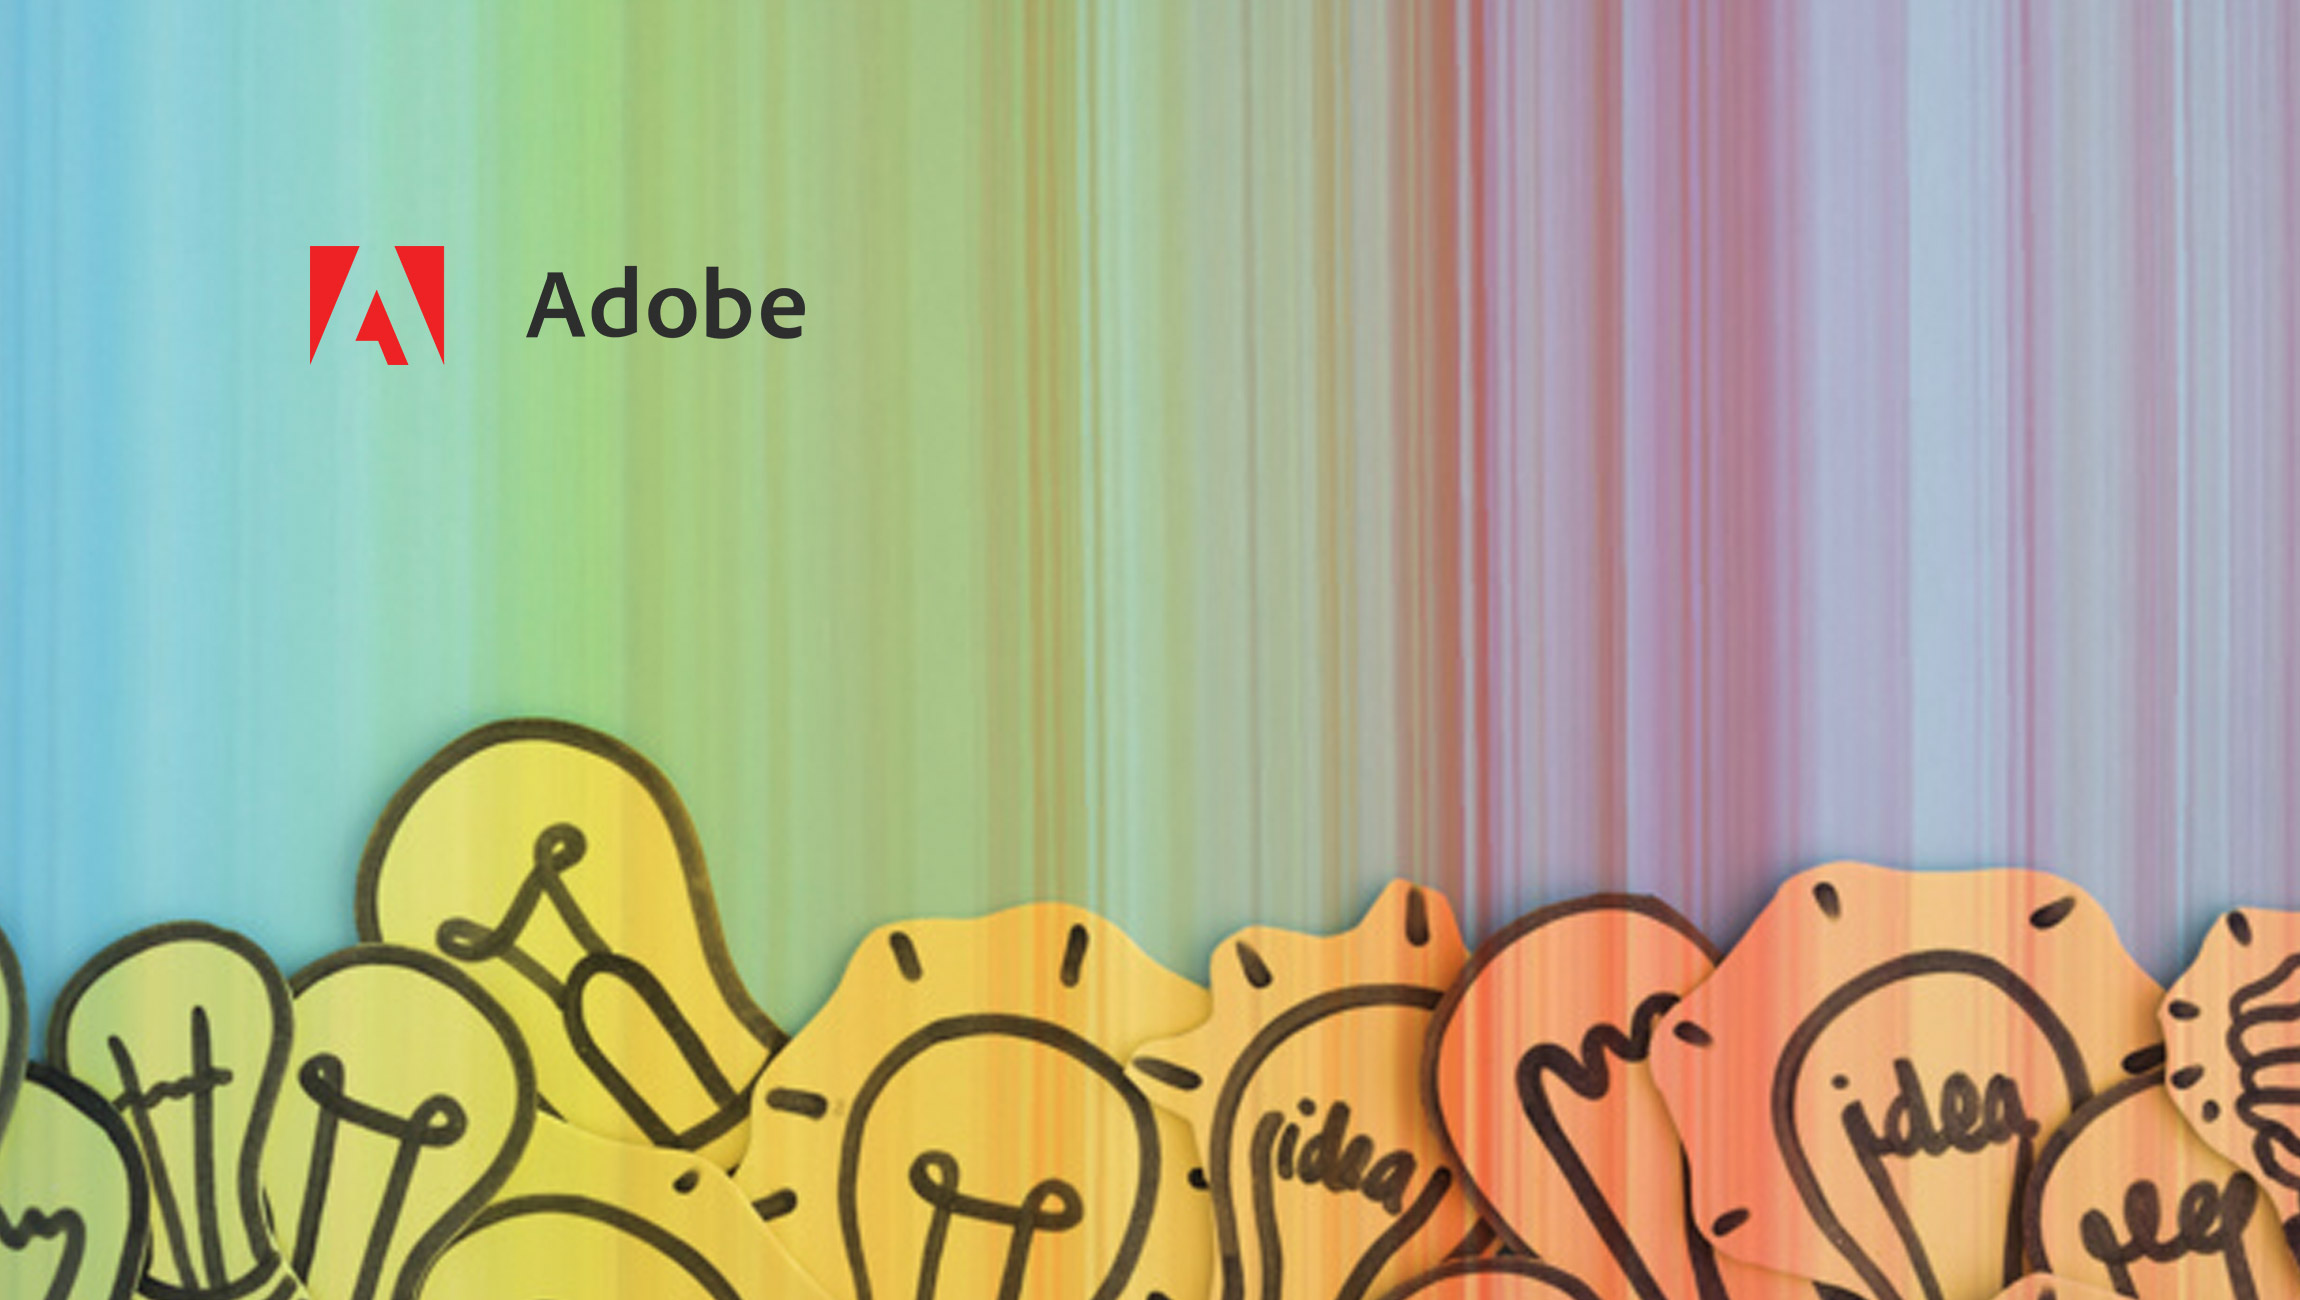 Adobe Survey Says That Voice and Screen Combined Are the Future